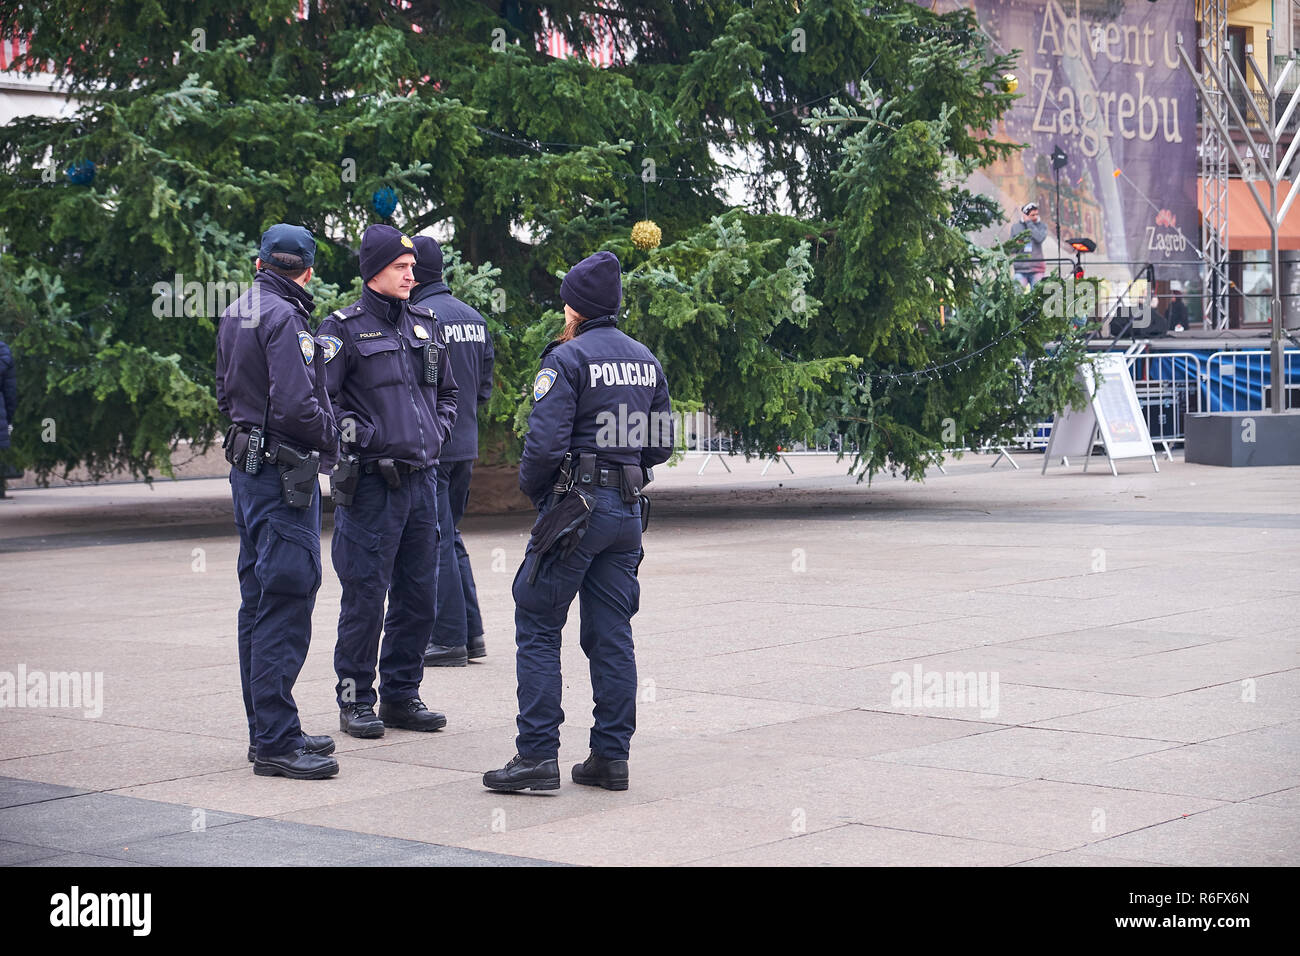 heavy-police-presence-throughout-the-venues-of-the-advent-market-in-the-capital-city-of-zagreb-R6FX6N.jpg